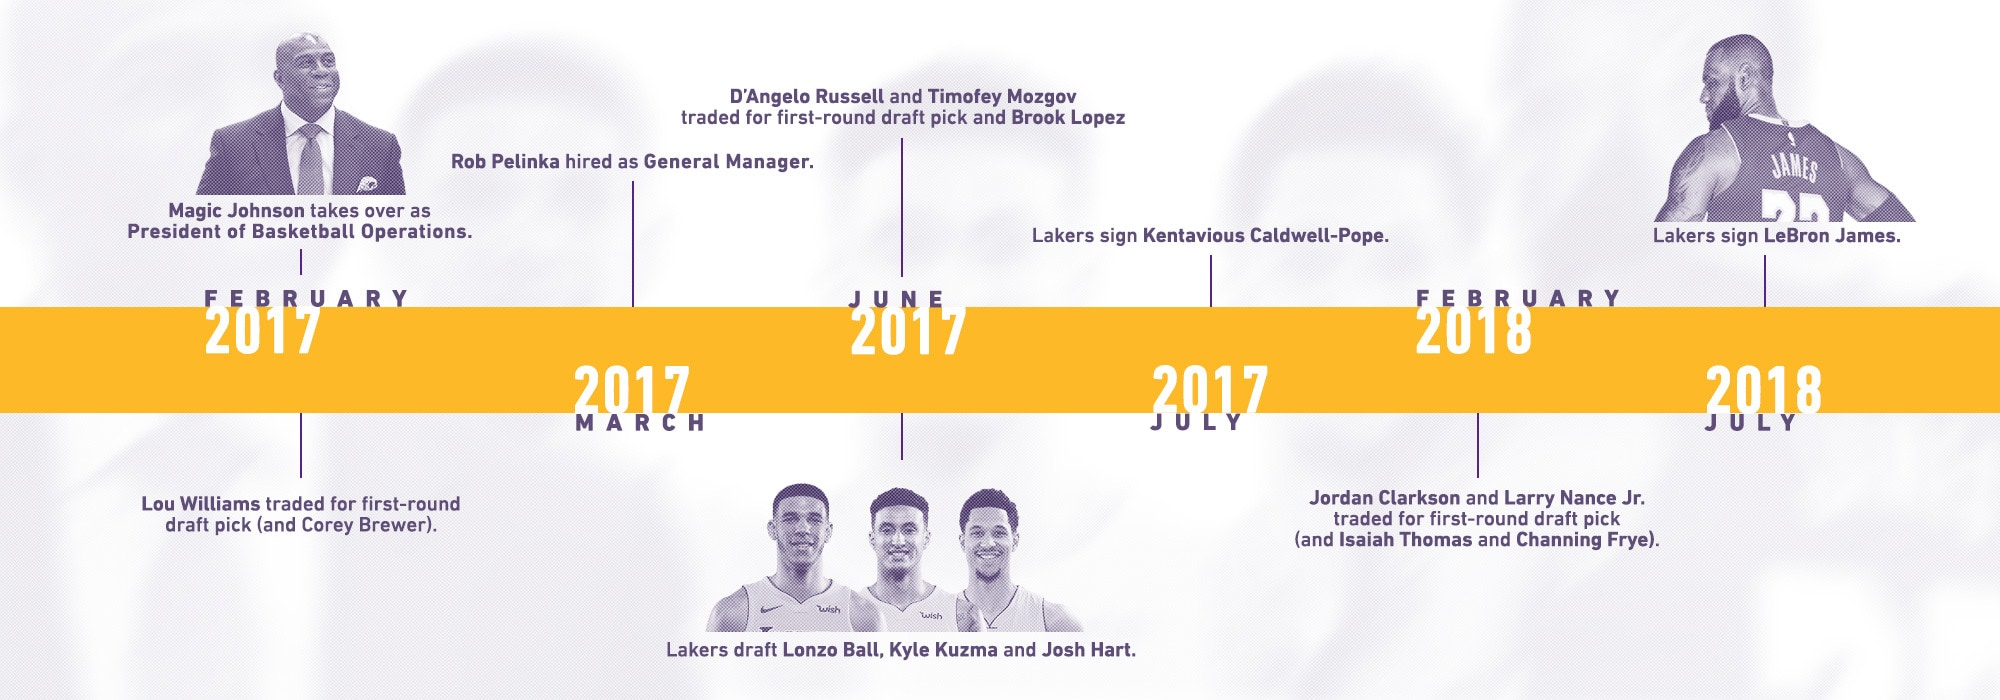 Lakers Timeline